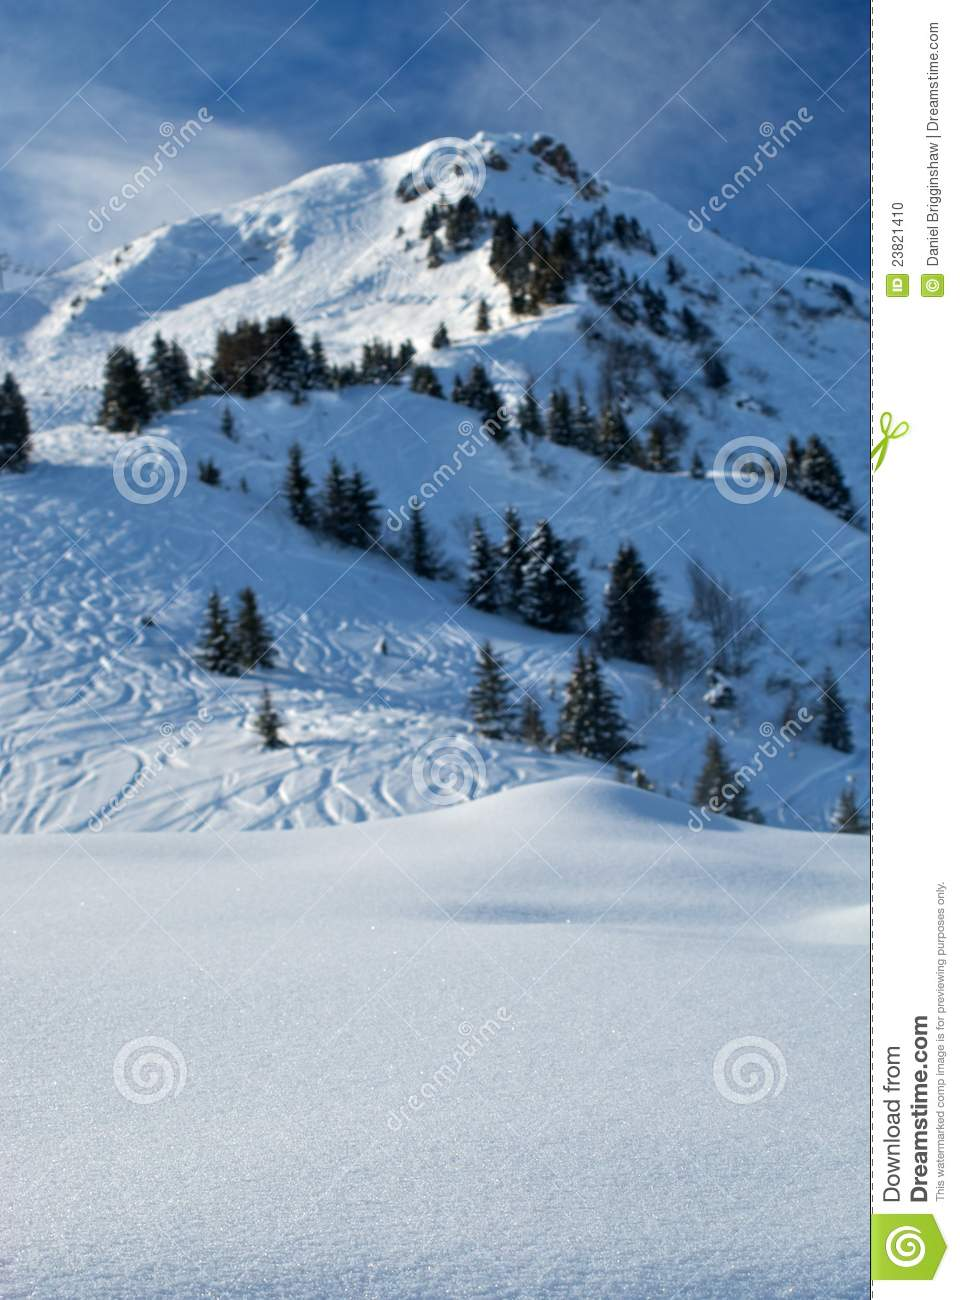 how to say snow in swiss